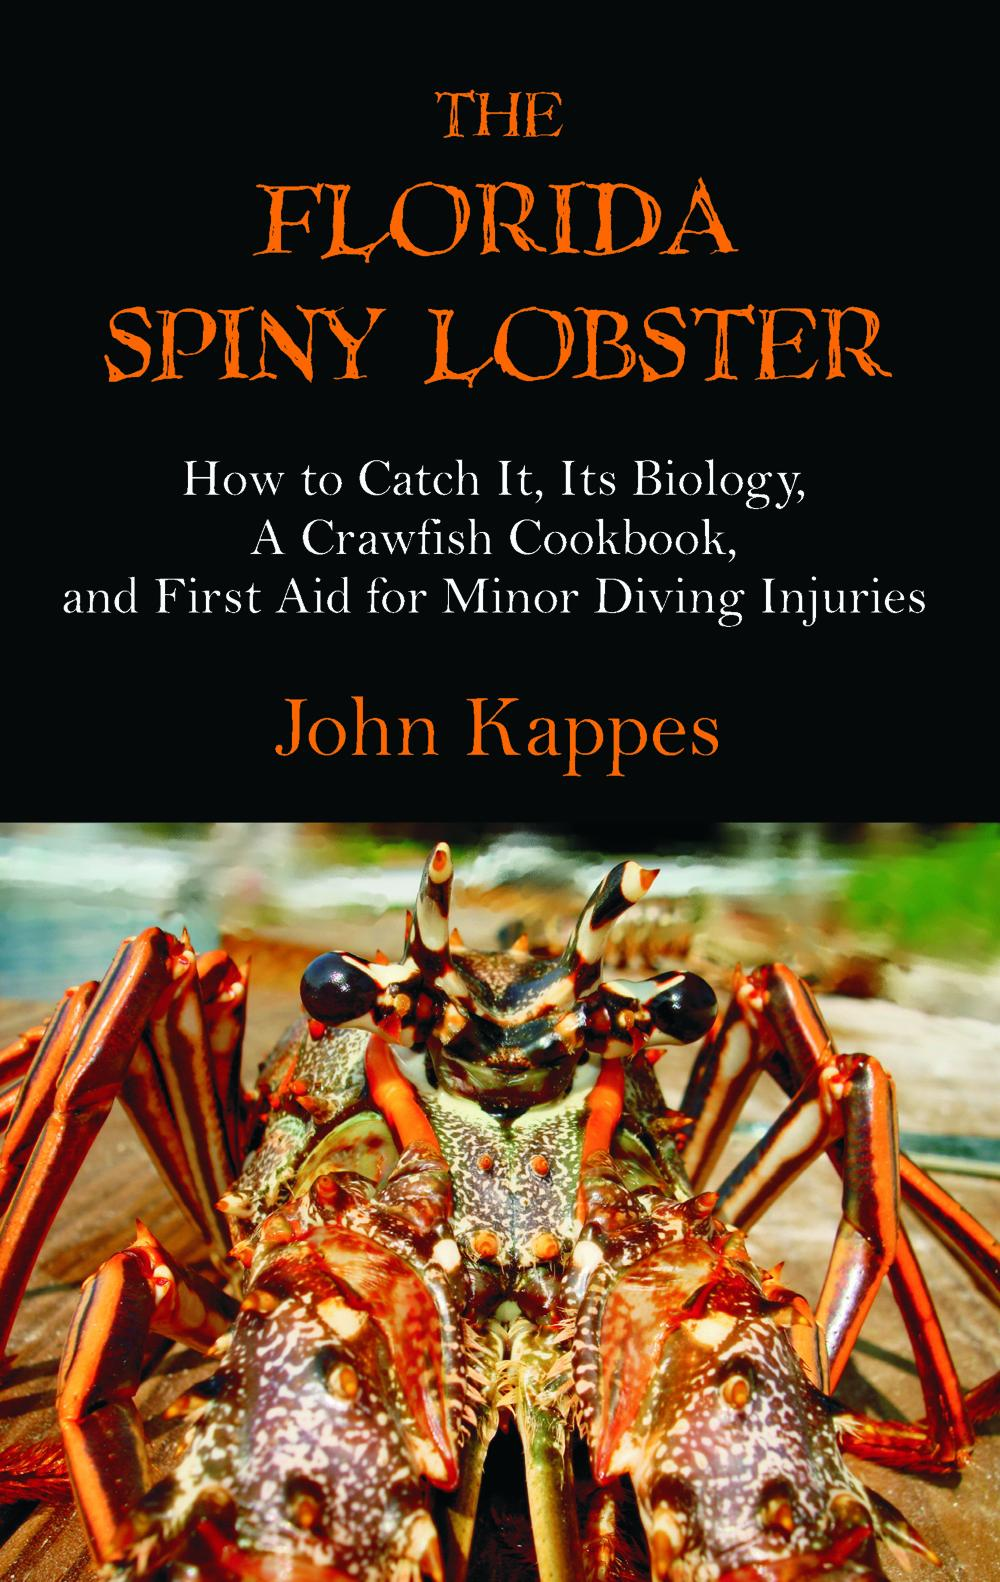 The Florida Spiny Lobster: How to Catch It, Its Biology, A Crawfish Cookbook, and First Aid for Minor Diving Injuries EB9781599429472